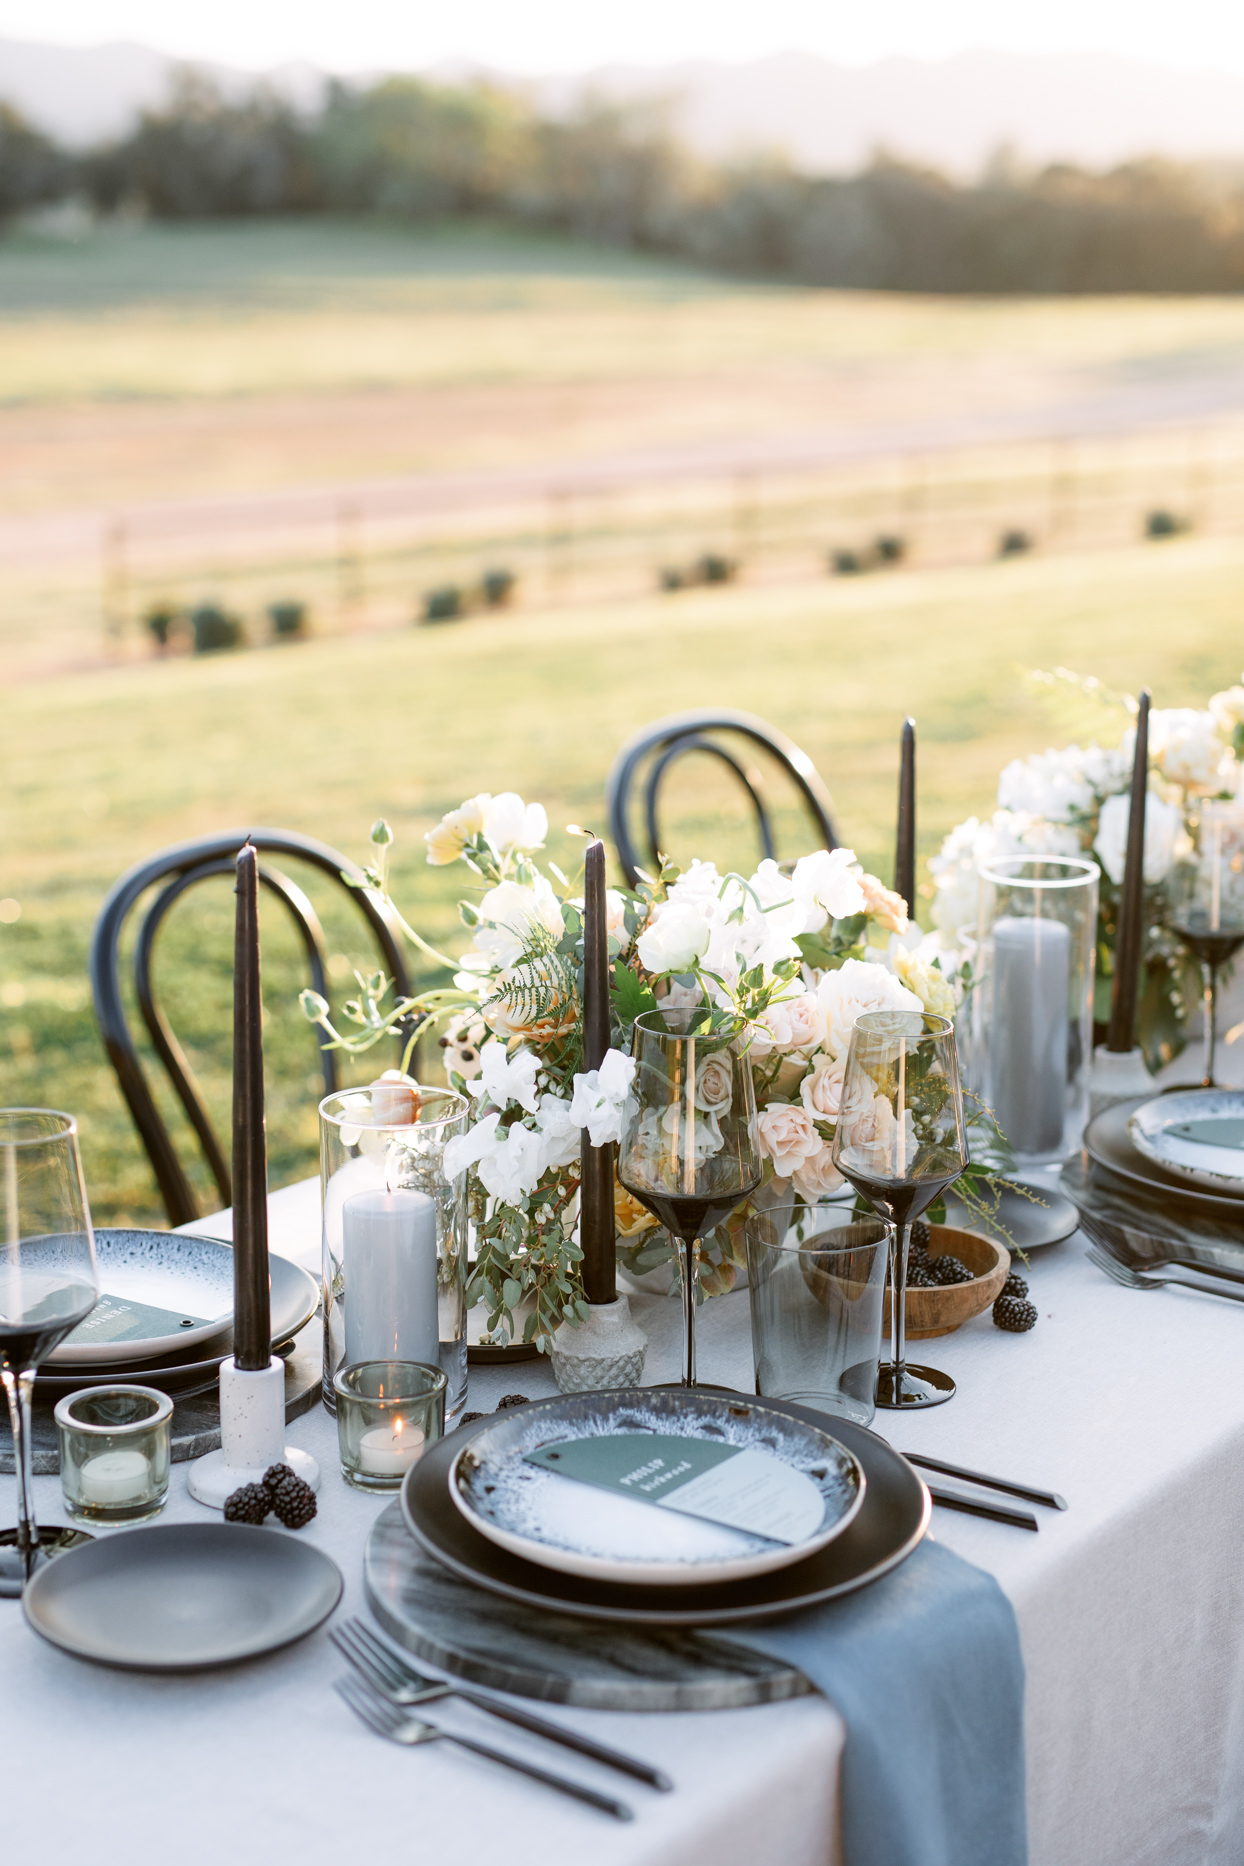 table setting with tall black candlesticks accented with grey napkins and plates